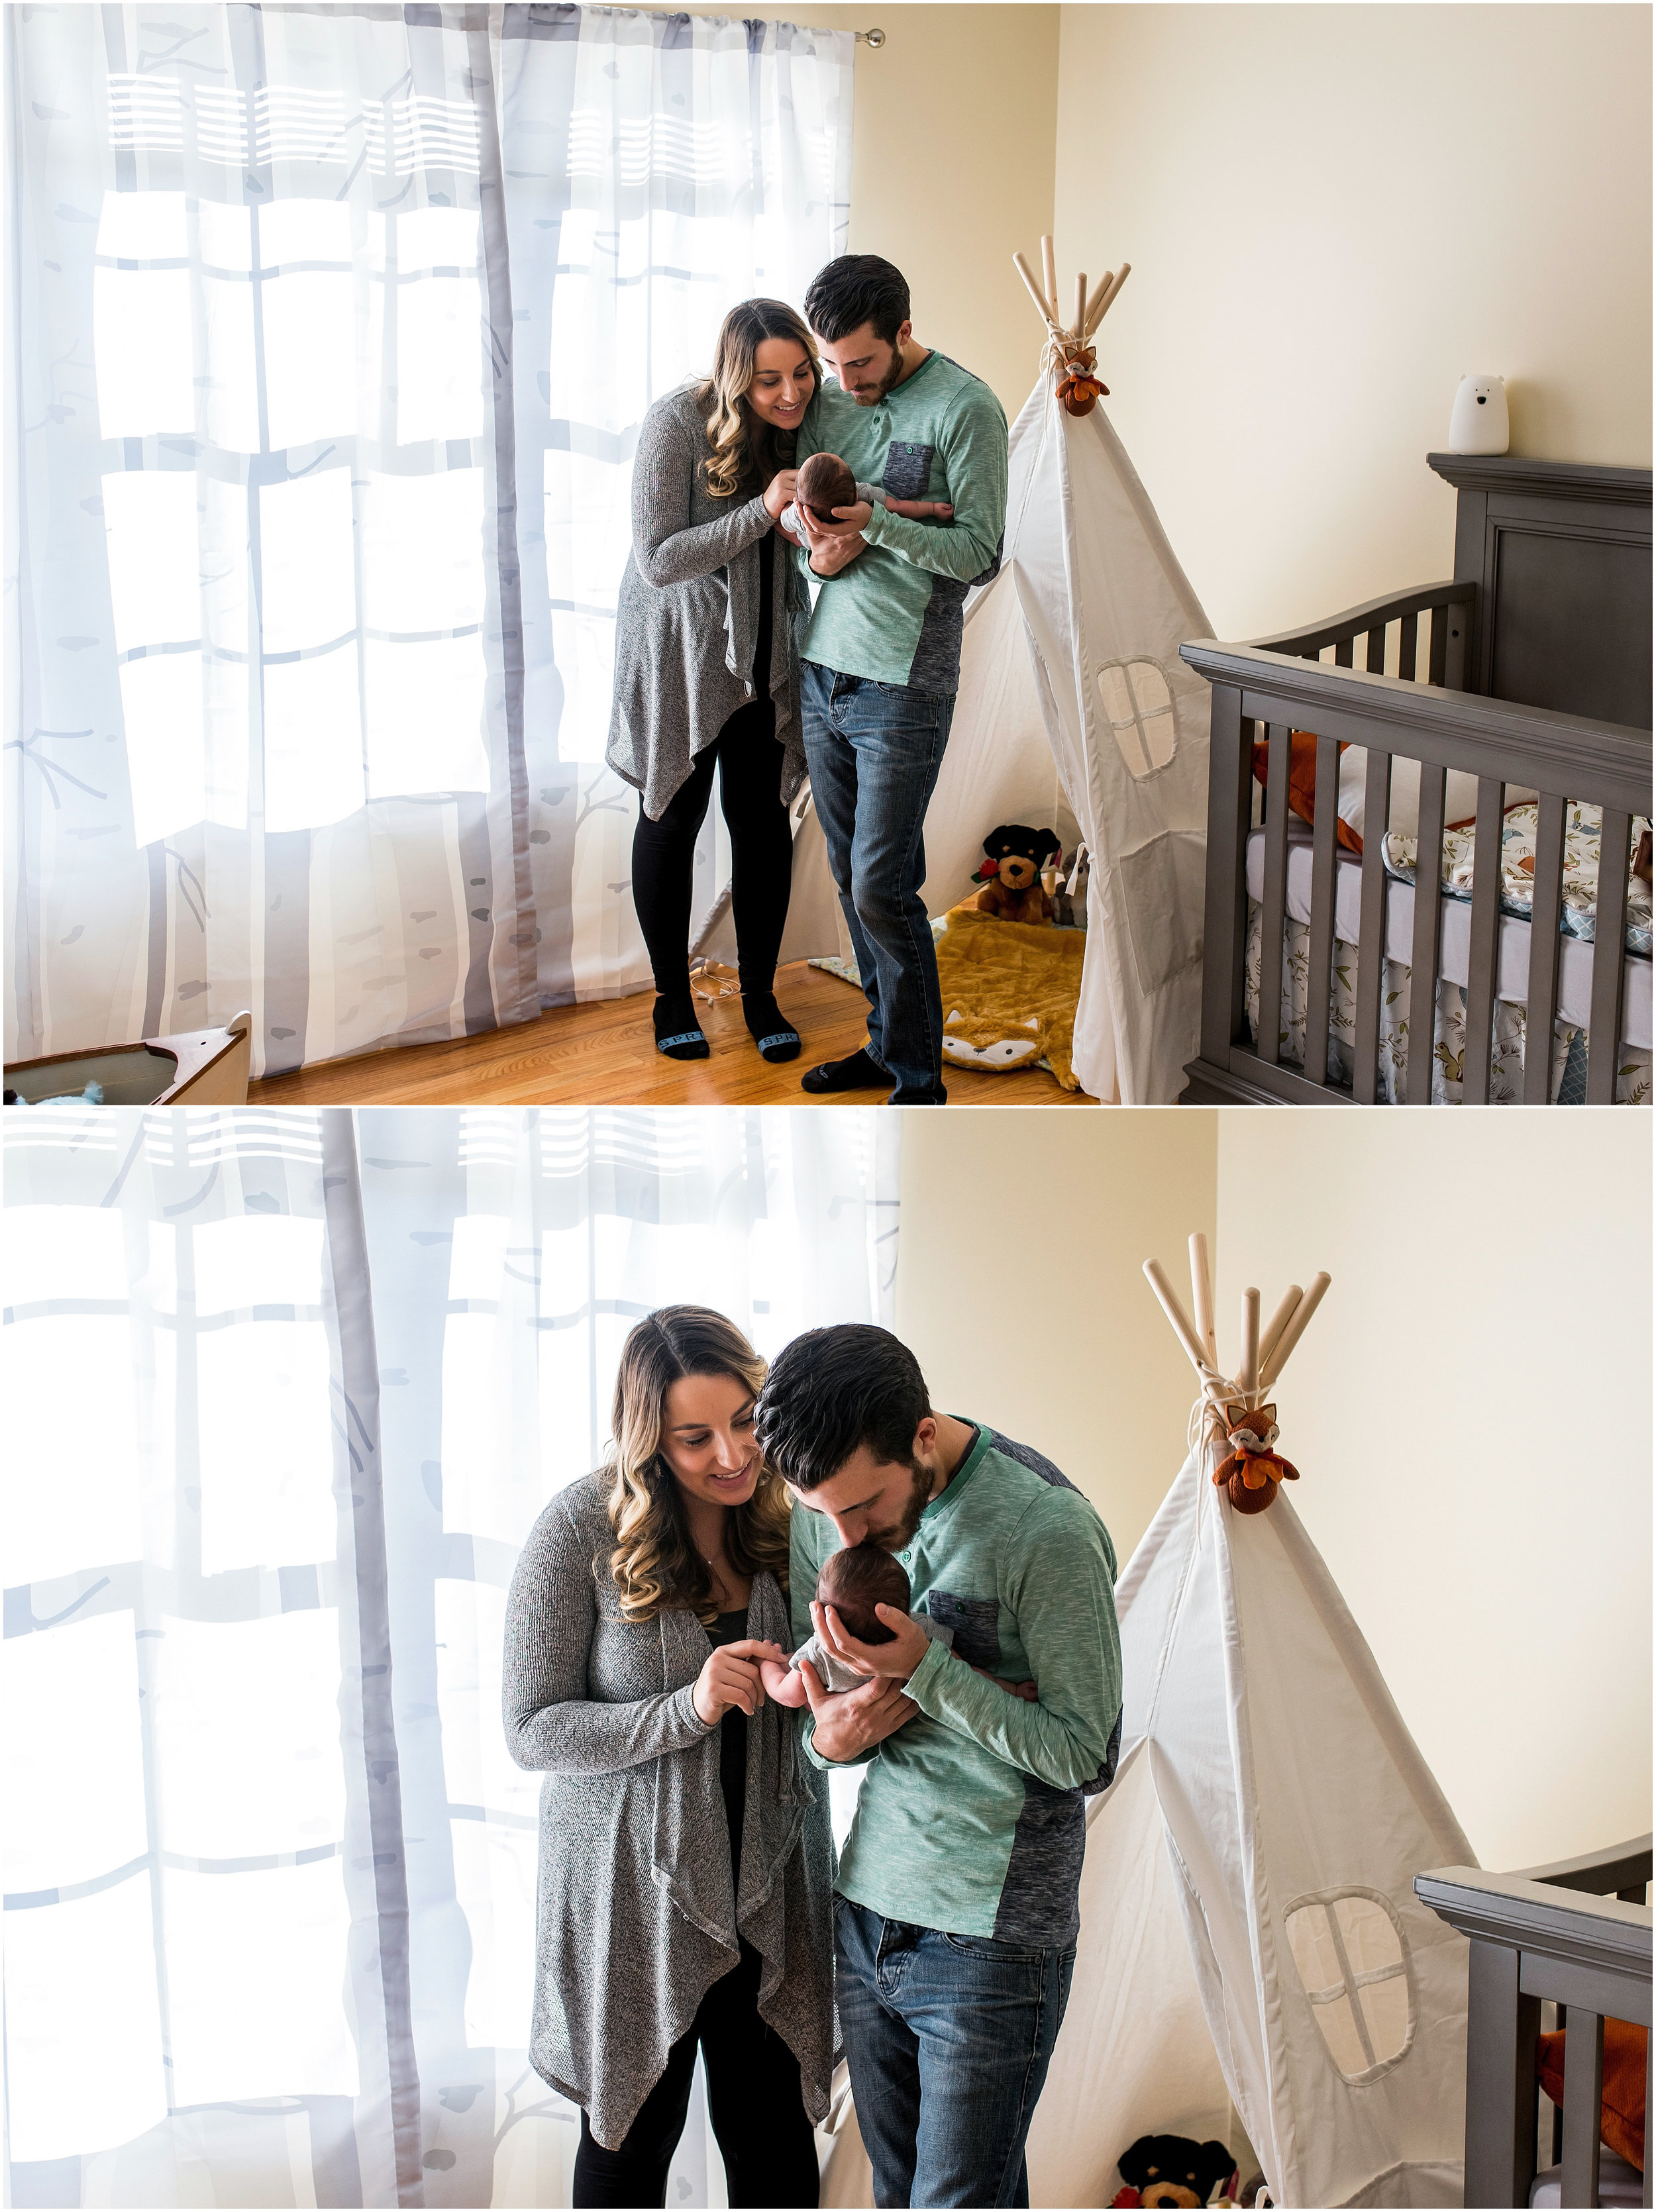 parents with newborn in nursery during connecticut newborn photography